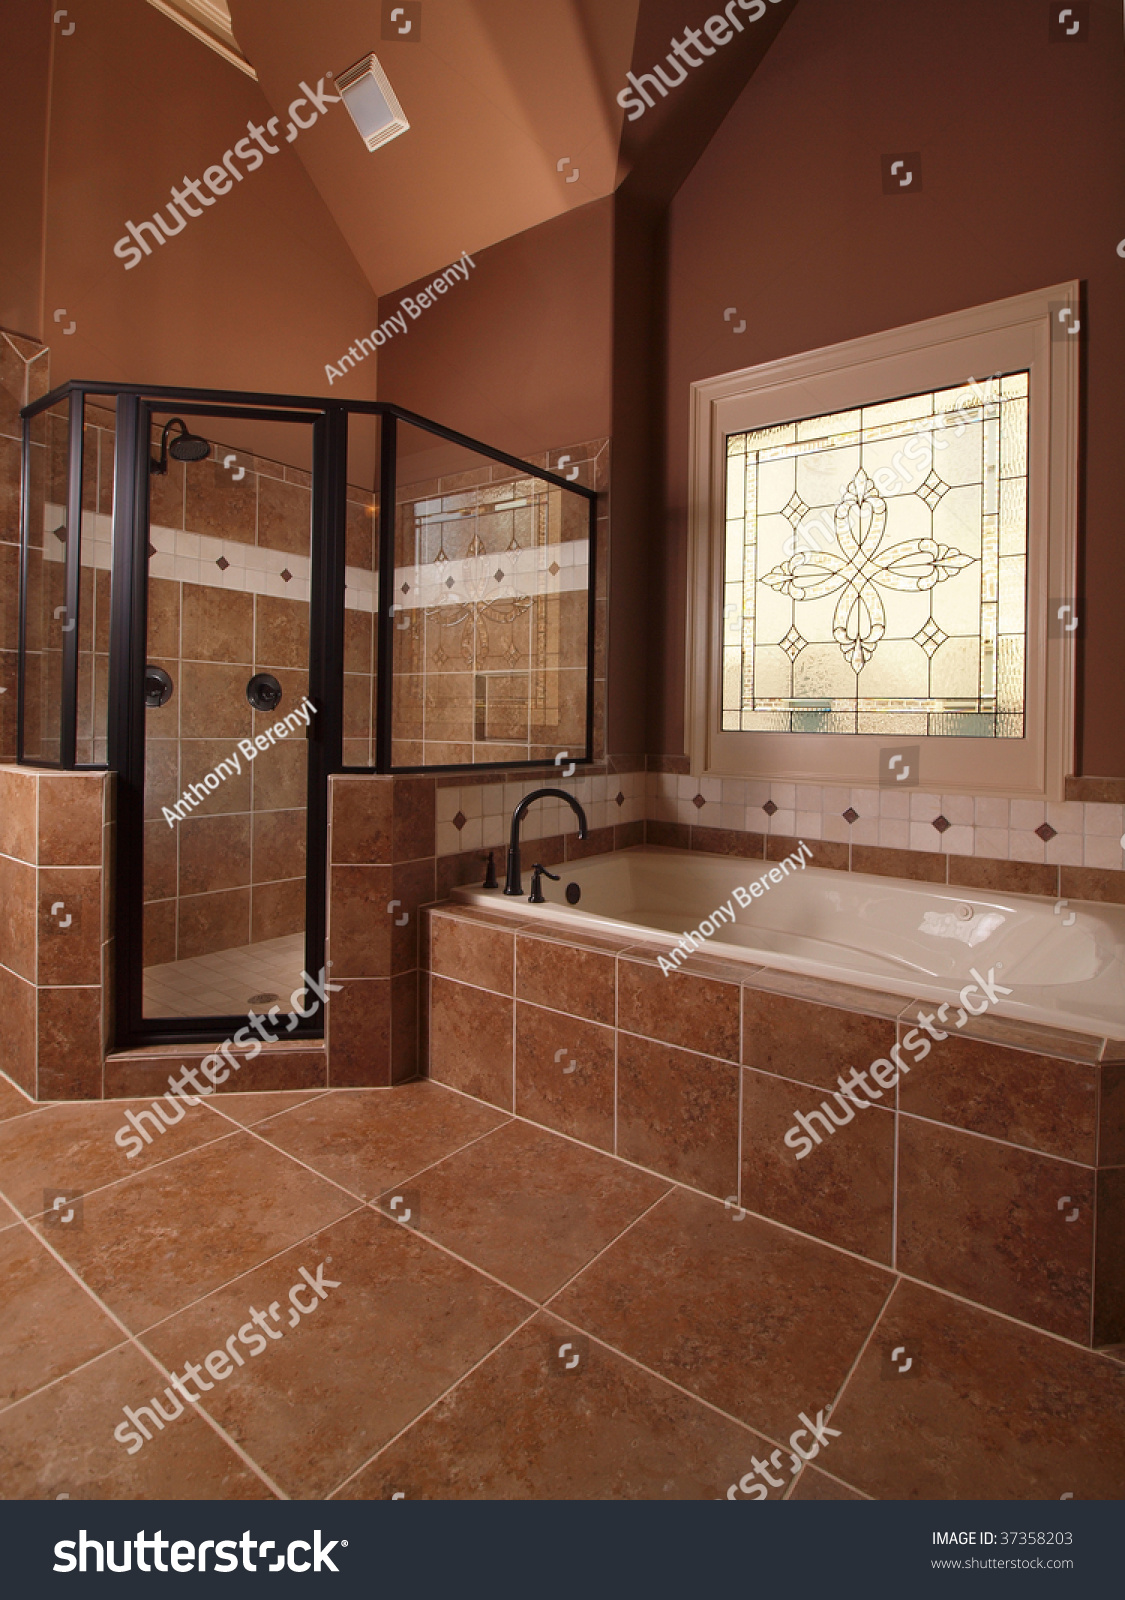 Luxury Home Tile Bathroom Stained Glass Stock Photo